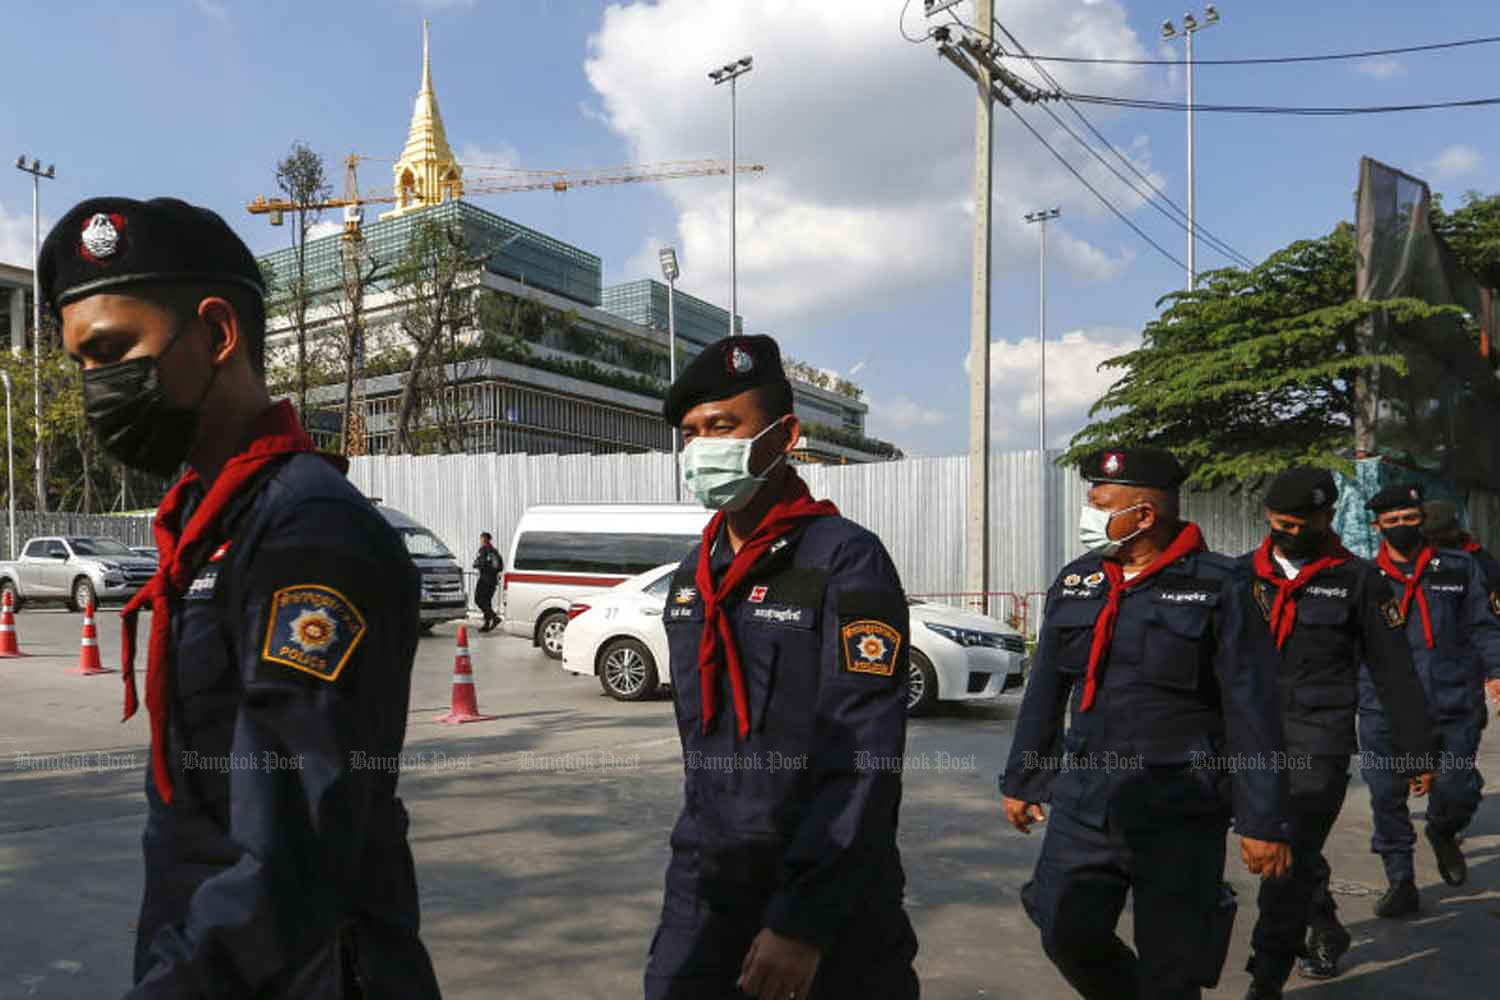 Police officers from Provincial Police Region 8 tighten security around parliament in Bangkok's Kiakkai area ahead of the two-day debate on charter amendment drafts that kicks off on Tuesday. Three groups of protesters plan to rally outside the compound. (Photo by Arnun Chonmahatrakool)